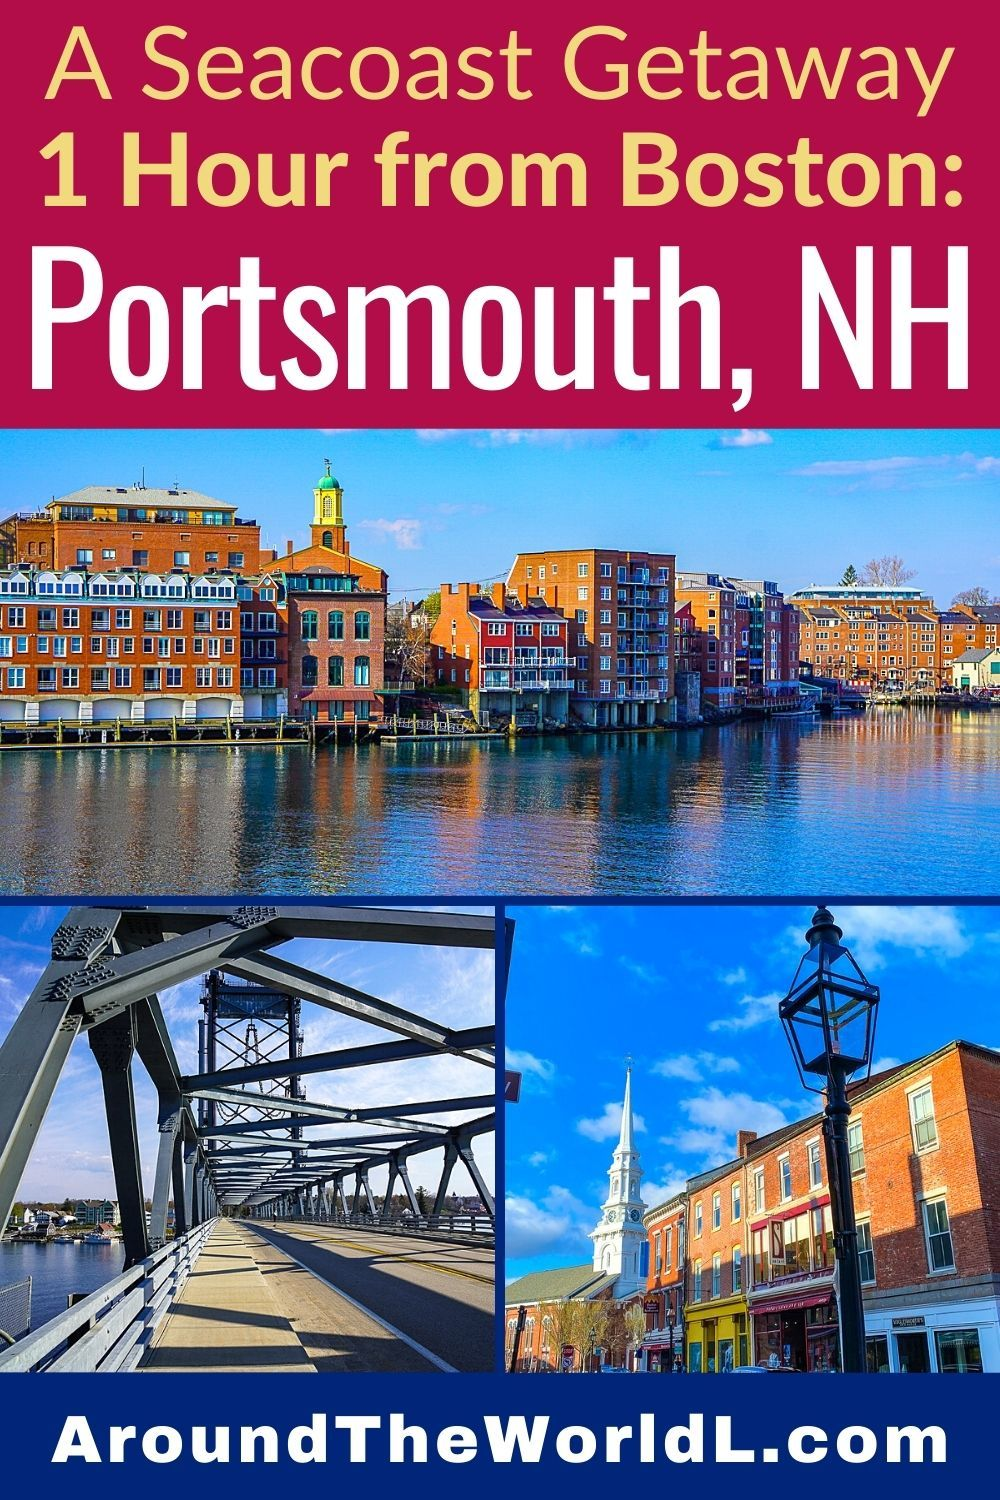 Things to do in Portsmouth, NH